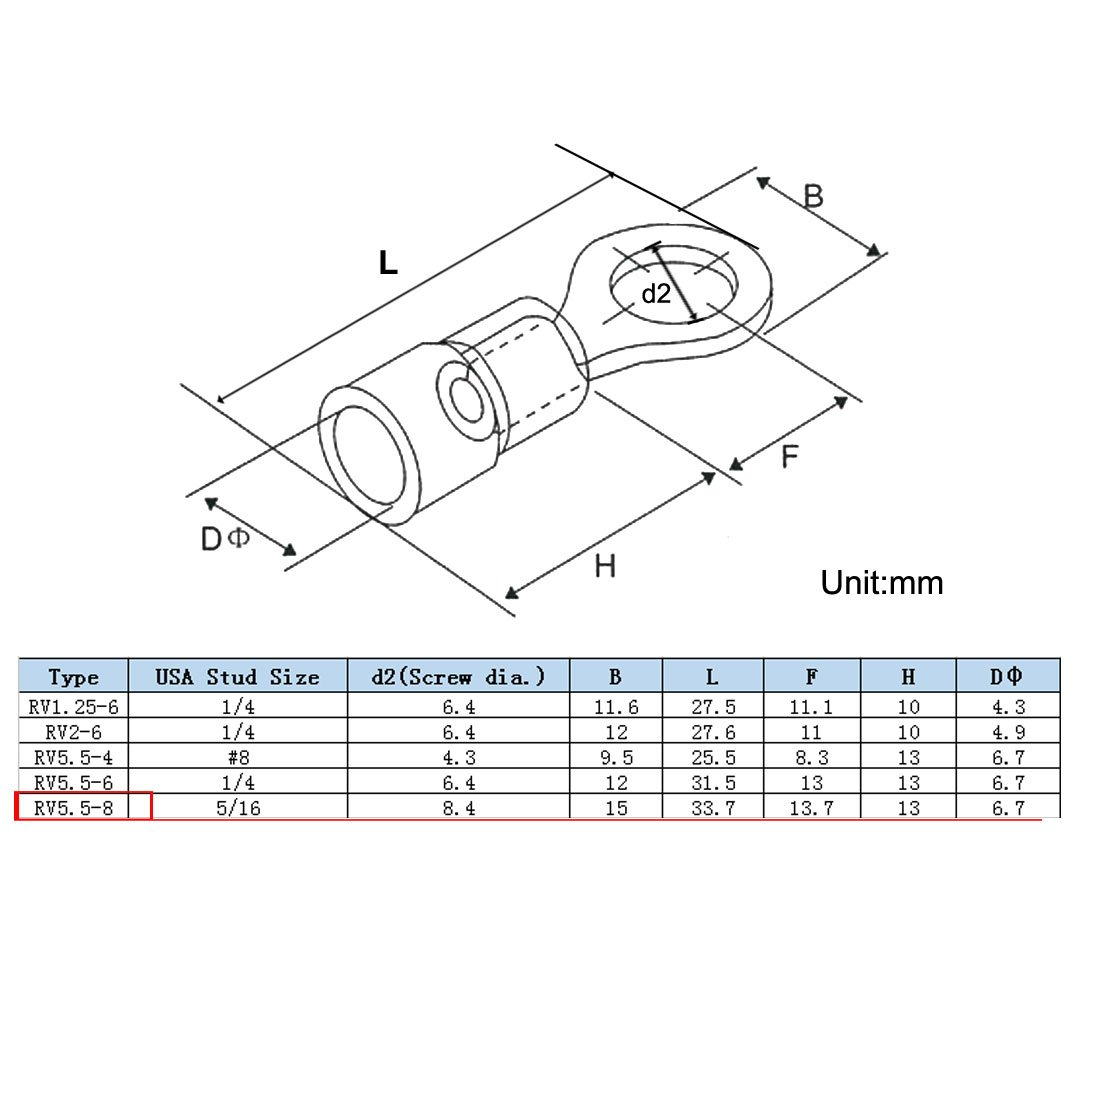 RV1,25-6 Insulated Sleeve Insulated Pre Ring Terminals DE de sourcing map 80Stk